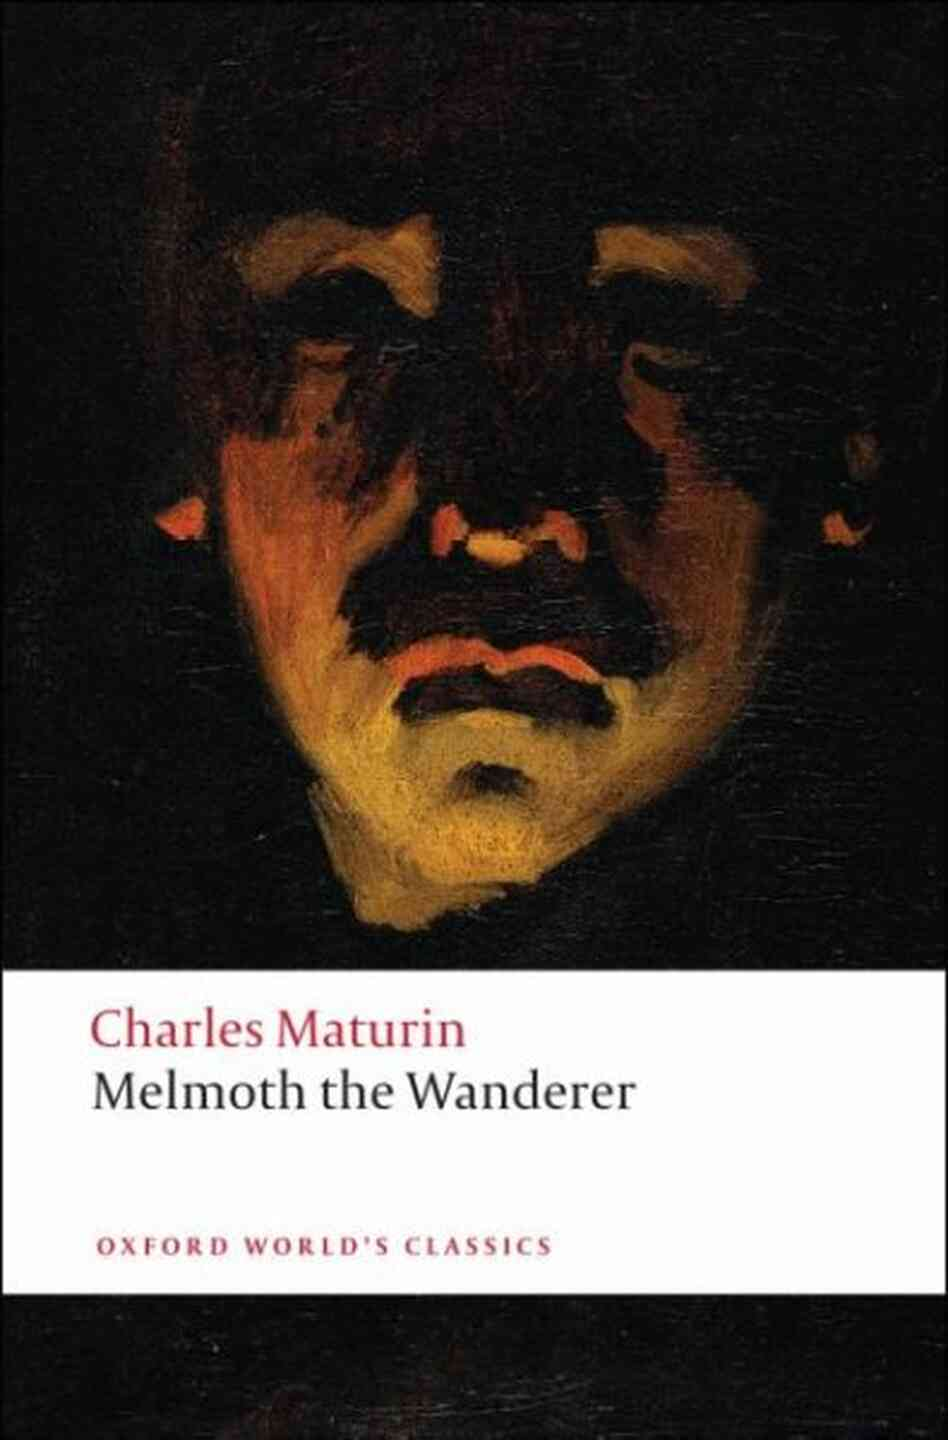 Melmoth the Wanderer